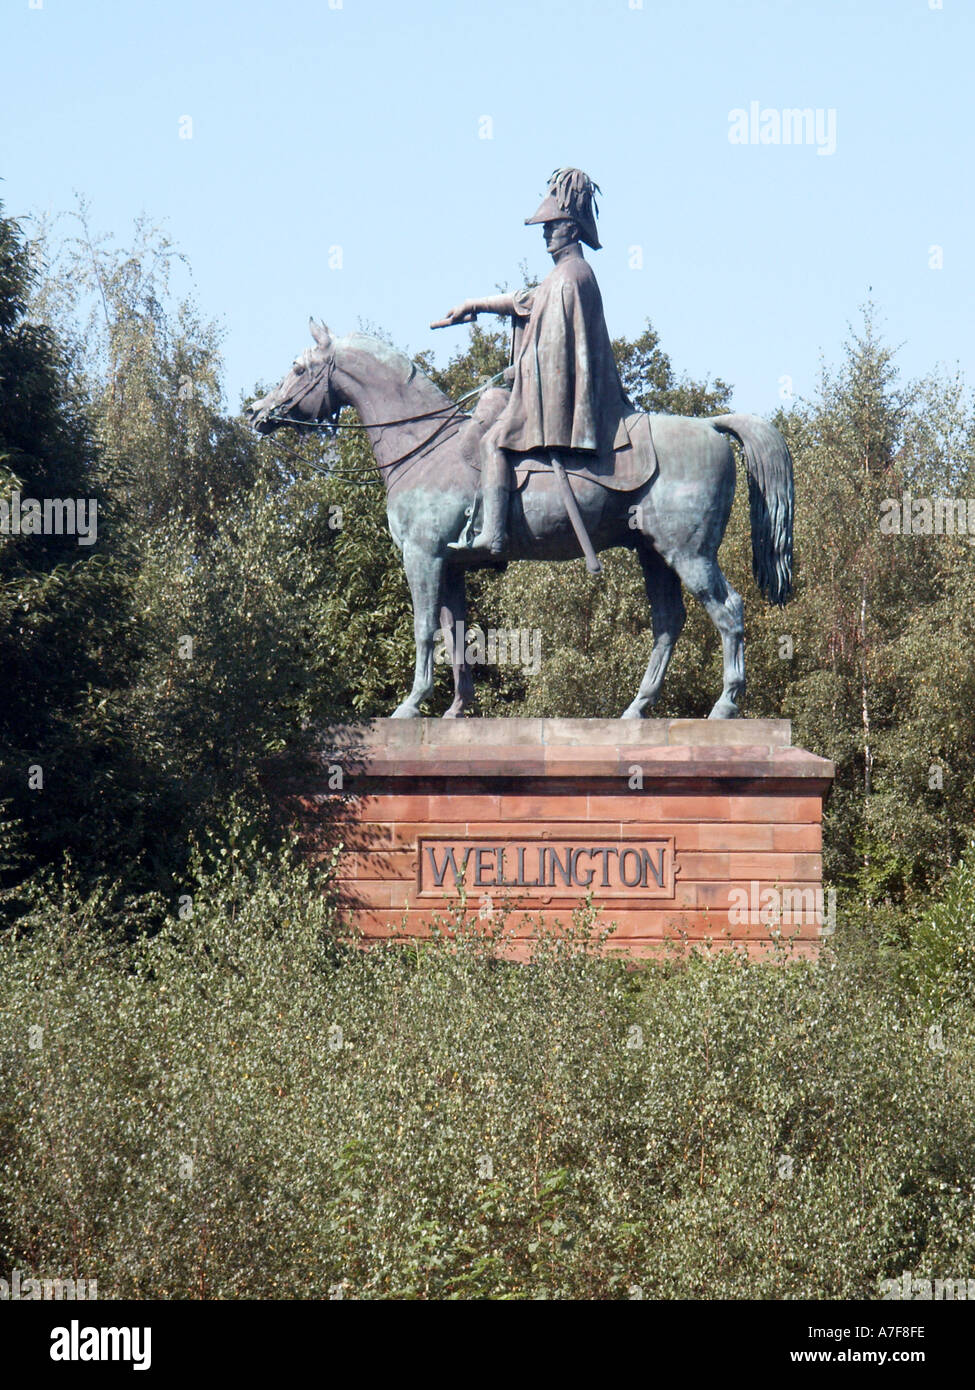 Aldershot Hampshire a town with large army establishment statue of Duke of Wellington in parkland - Stock Image